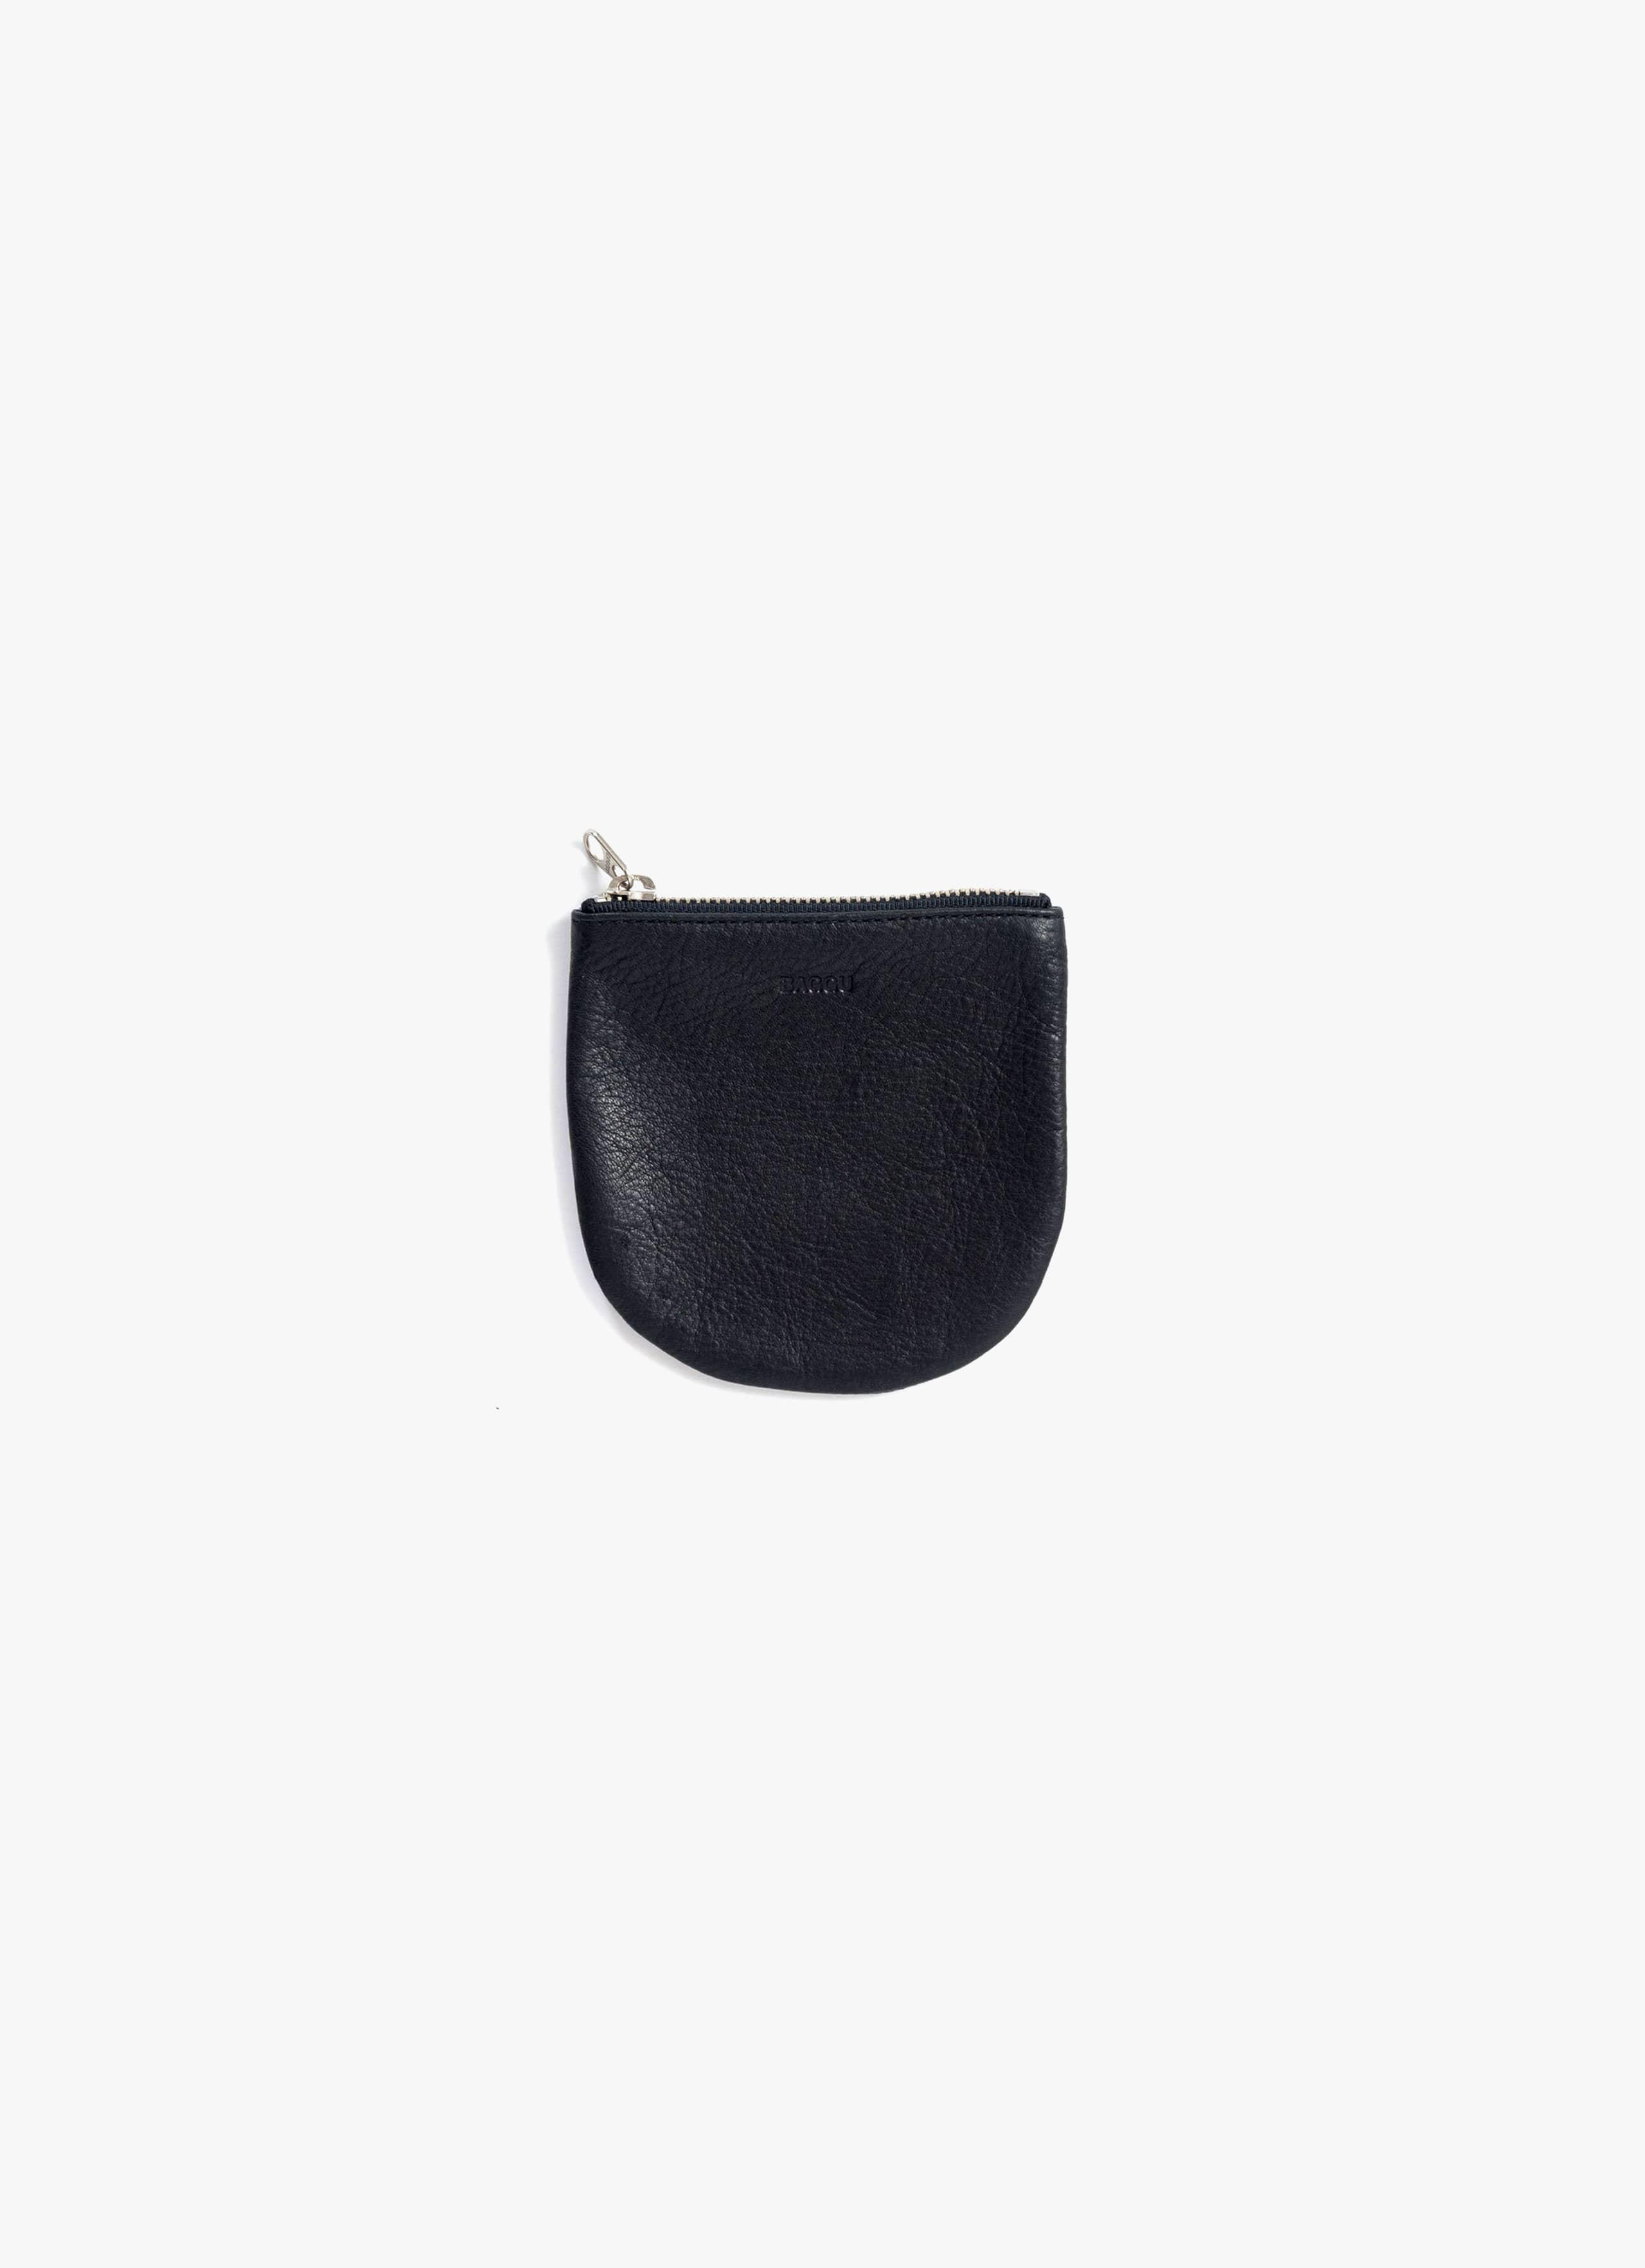 Baggu - Small U Pouch - Black - Leather